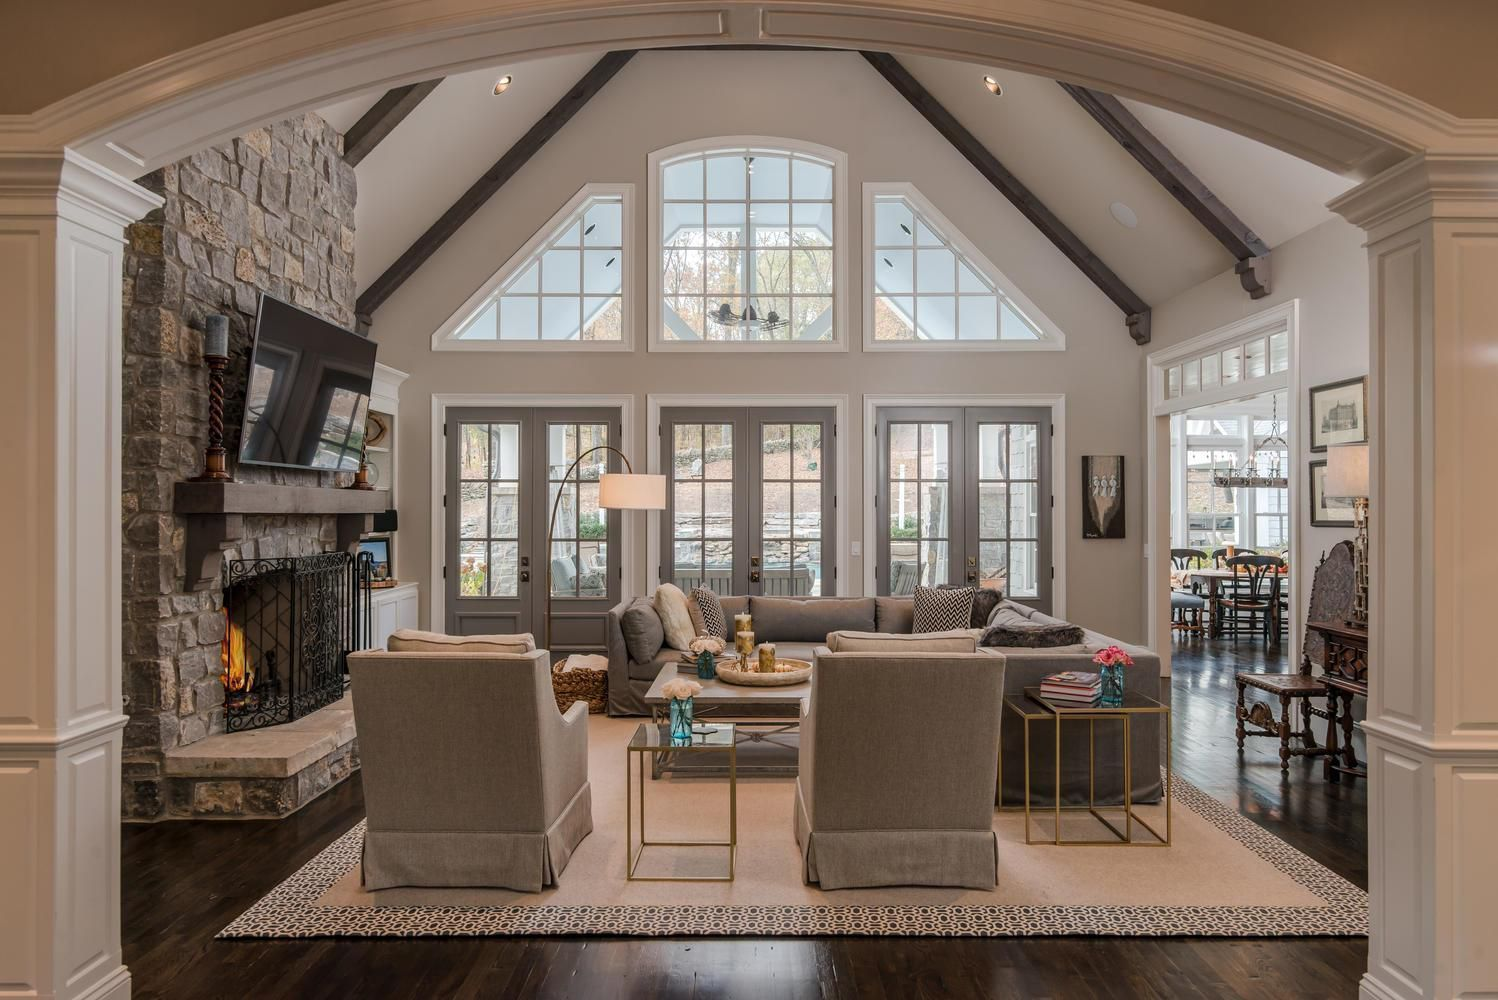 Great Room Vaulted Ceiling With Beams And Win